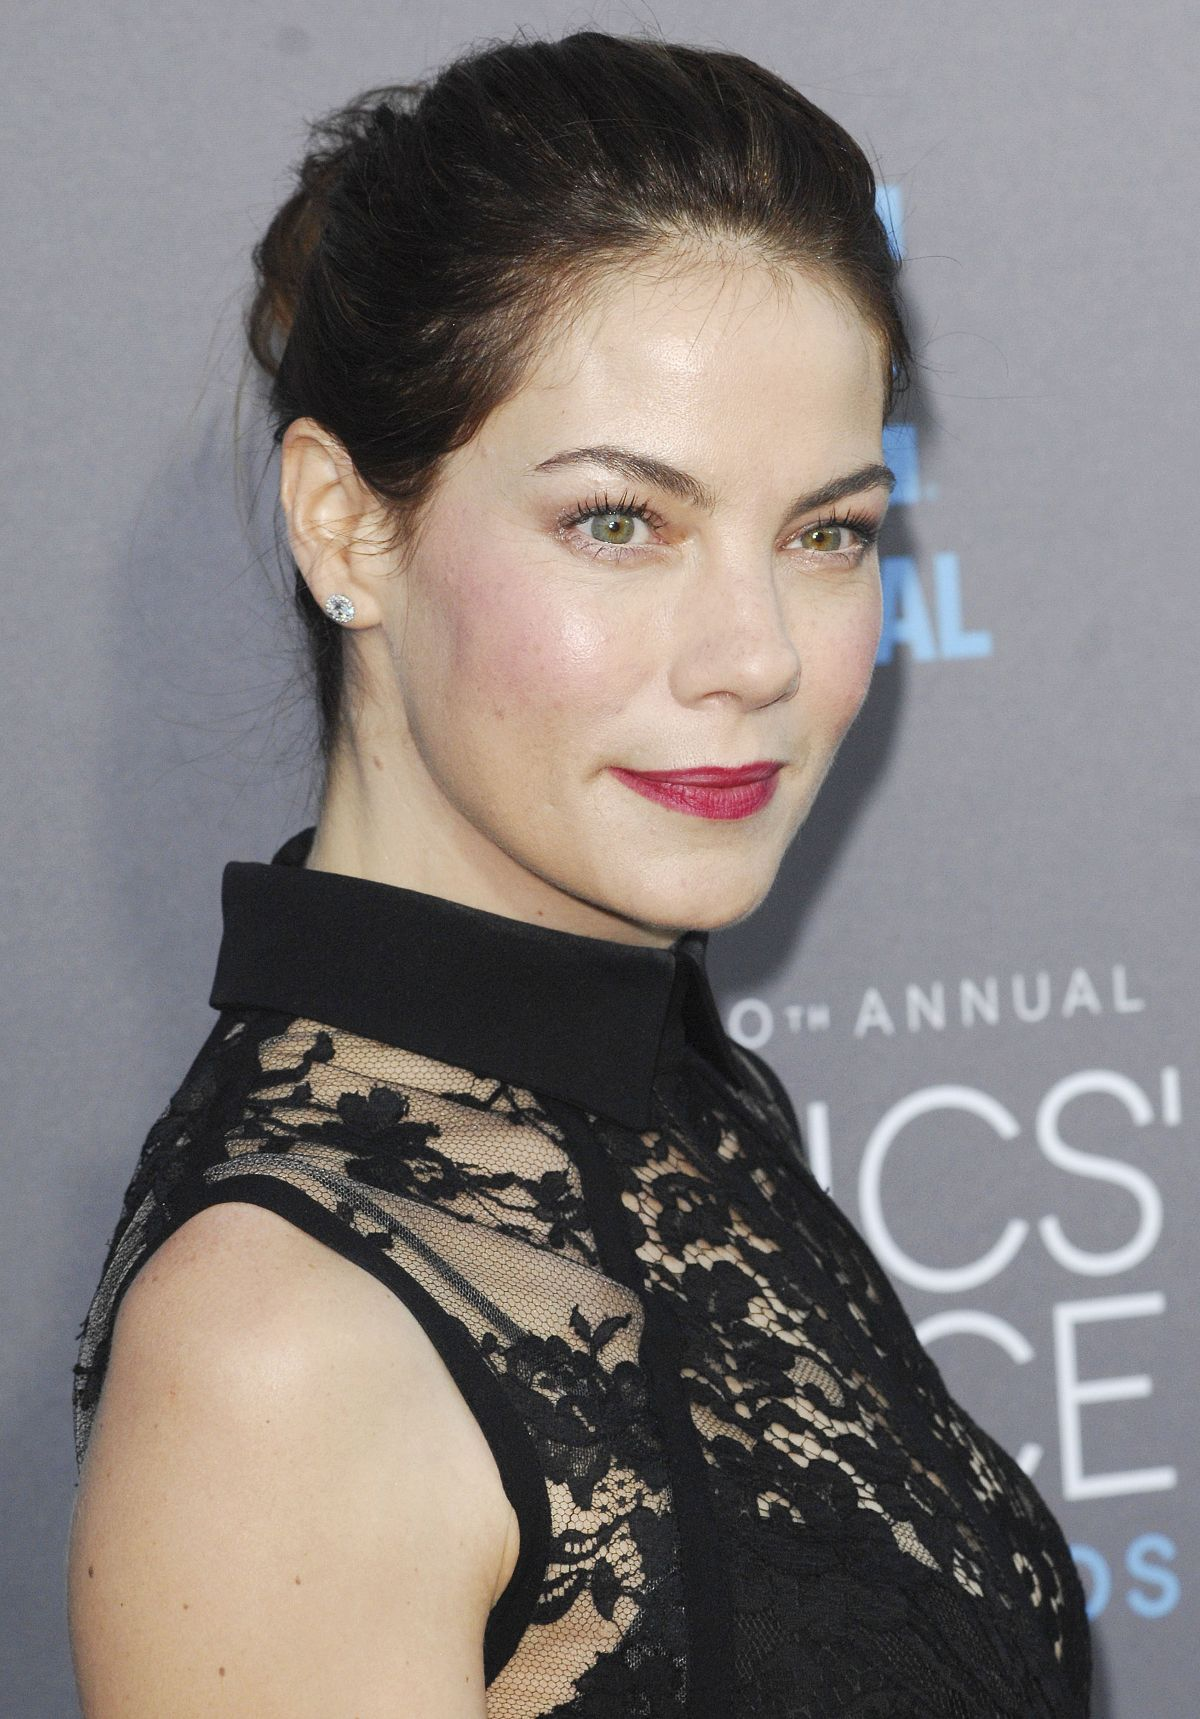 MICHELLE MONAGHAN at 2015 Critics Choice Movie Awards in Los Angeles